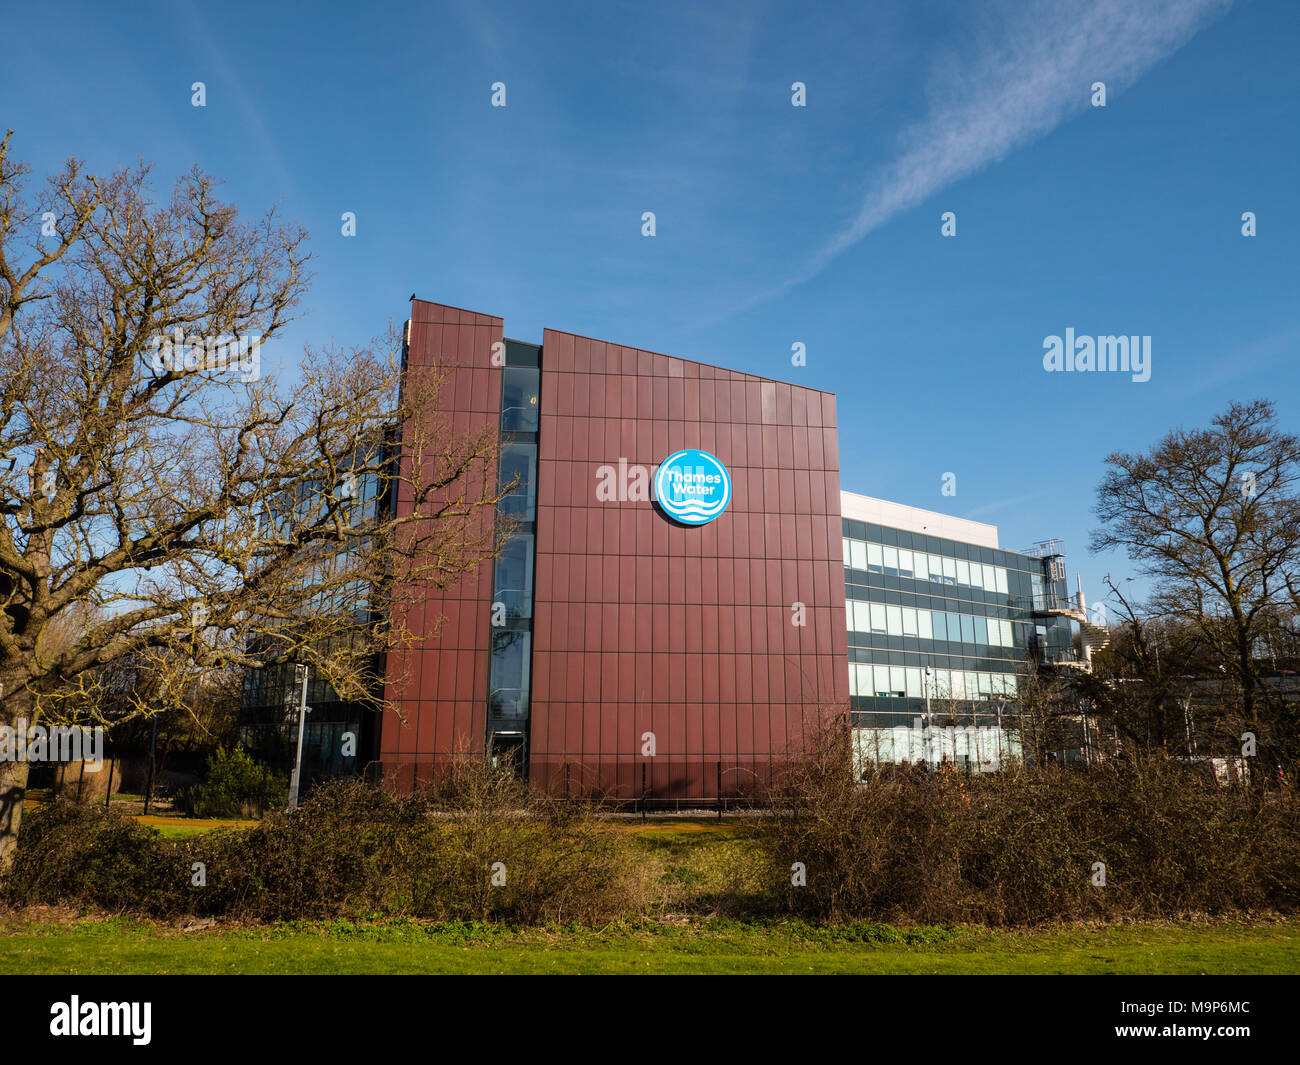 Thames Water Offices, Green Park Business Park, Reading, Berkshire, England, UK. - Stock Image